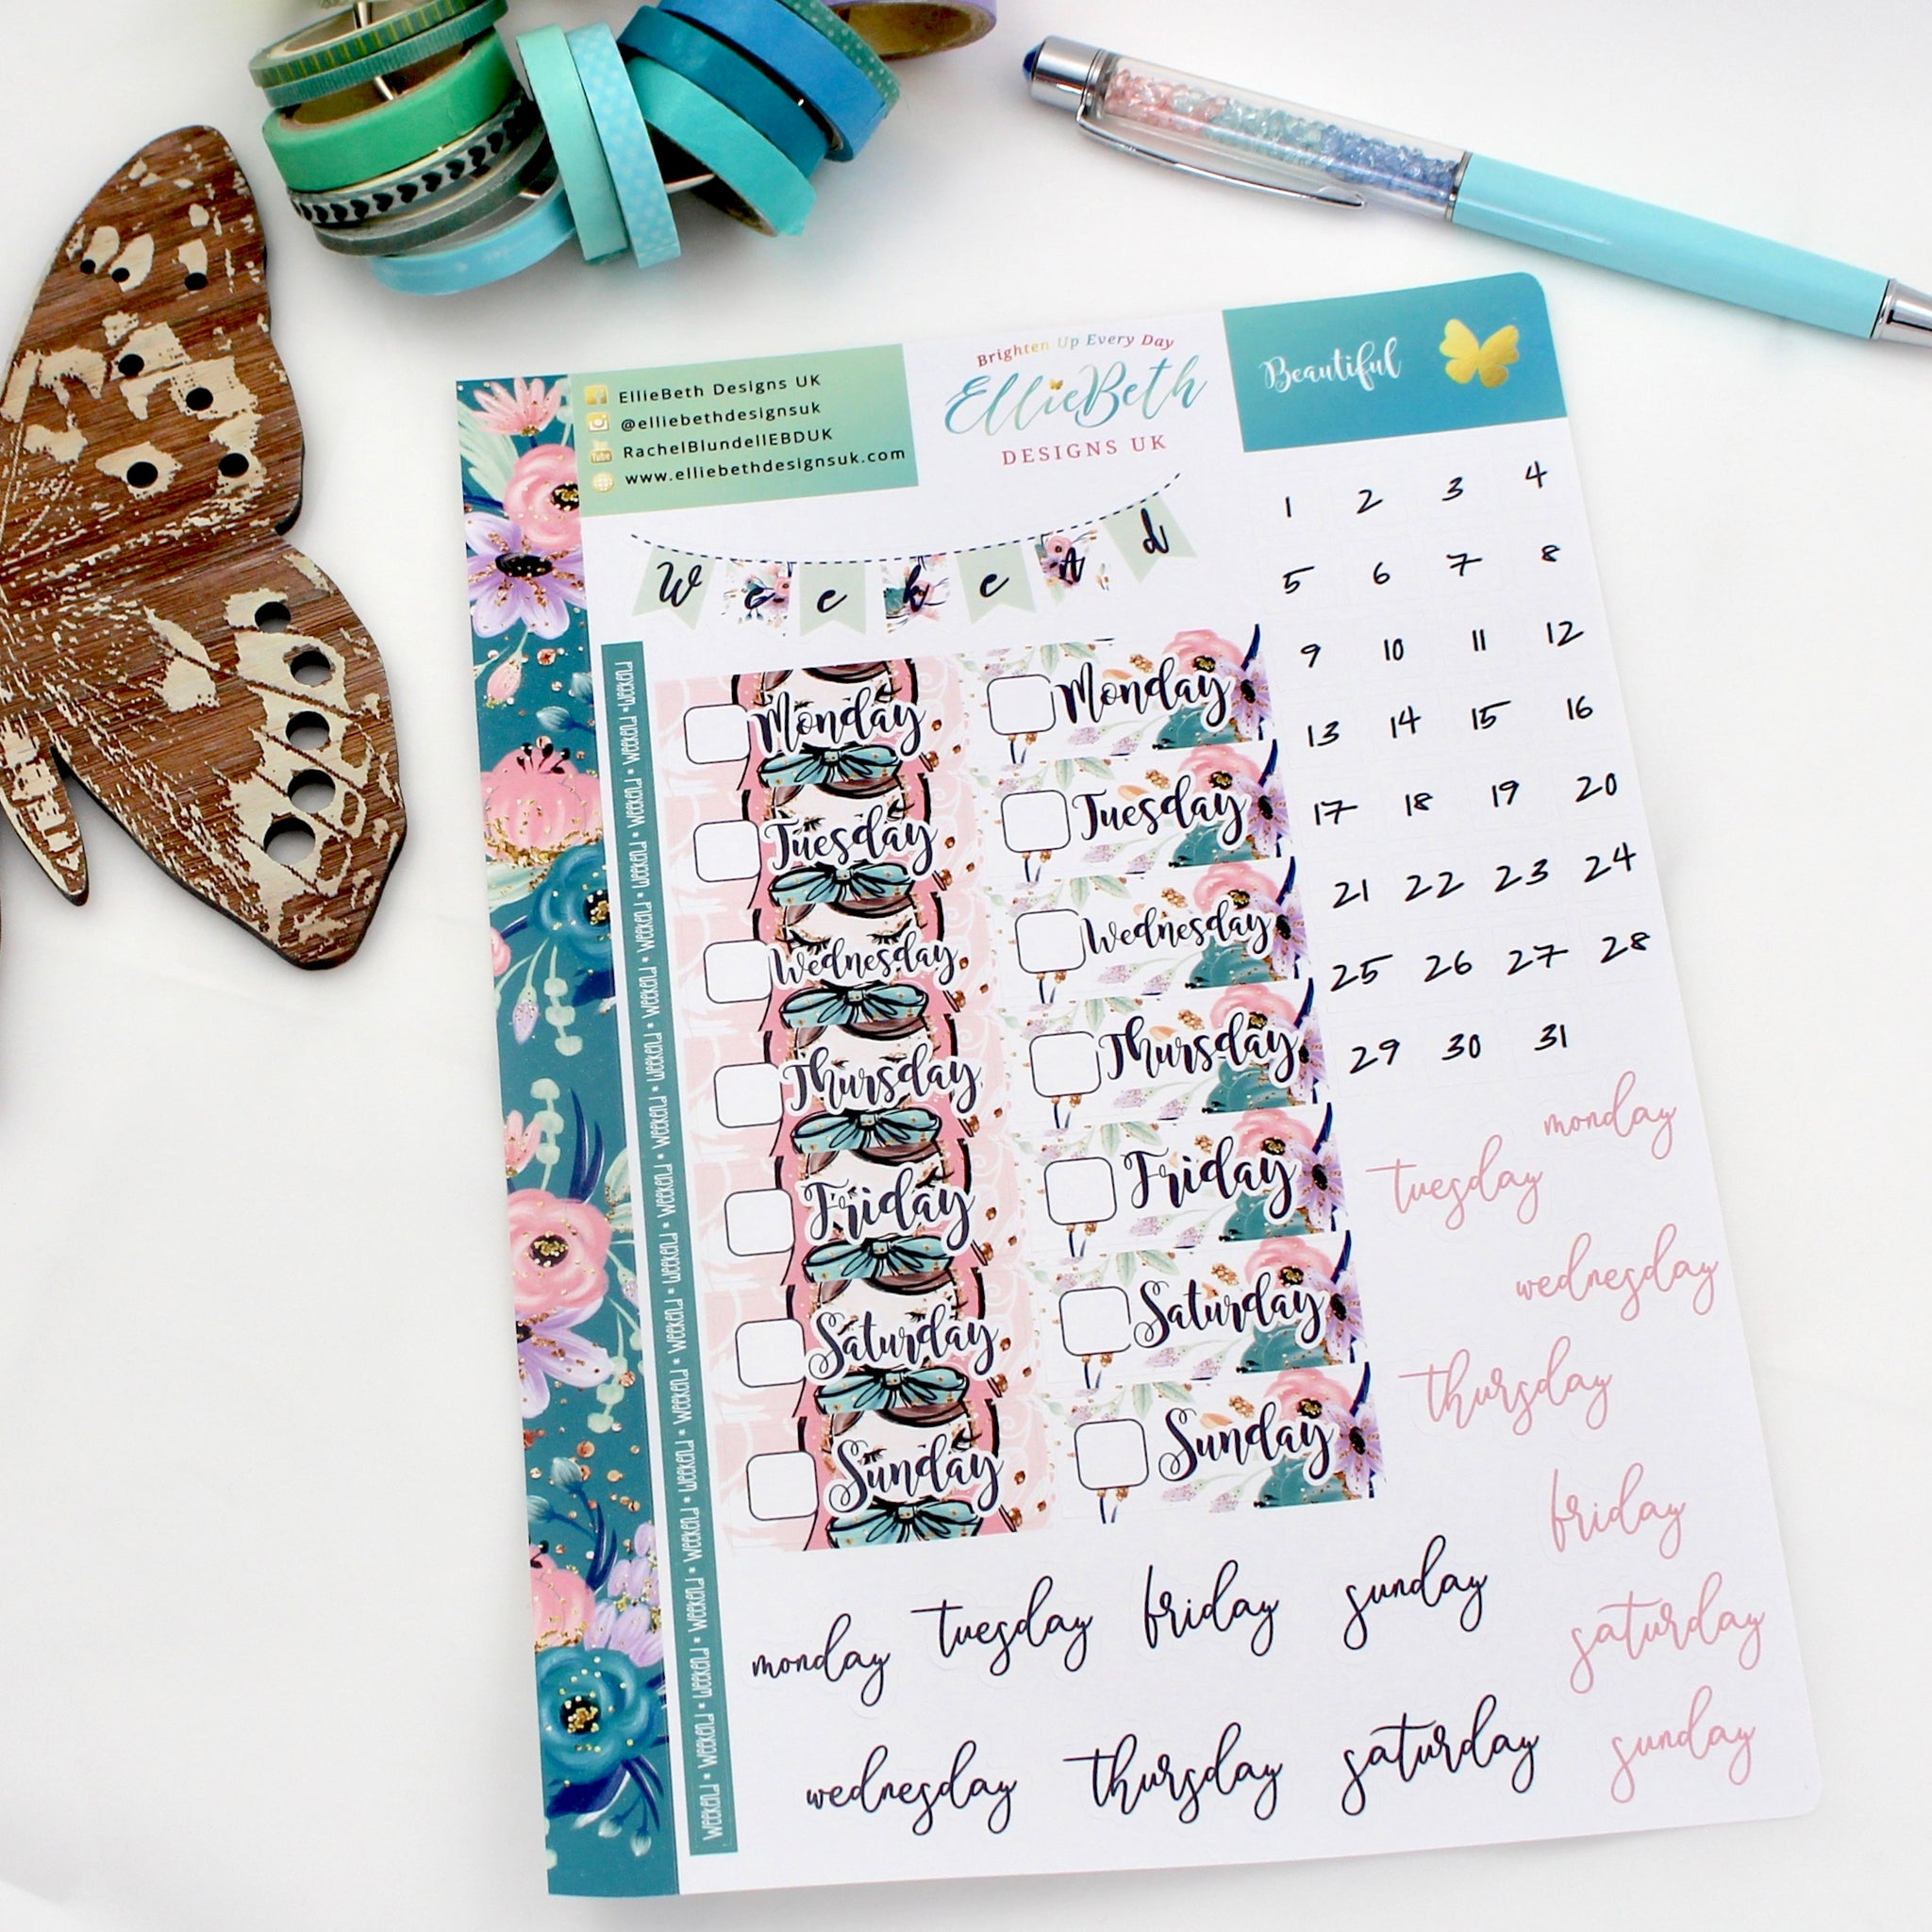 'Beautiful' - Days and Dates -  A5 binder ready planner stickers